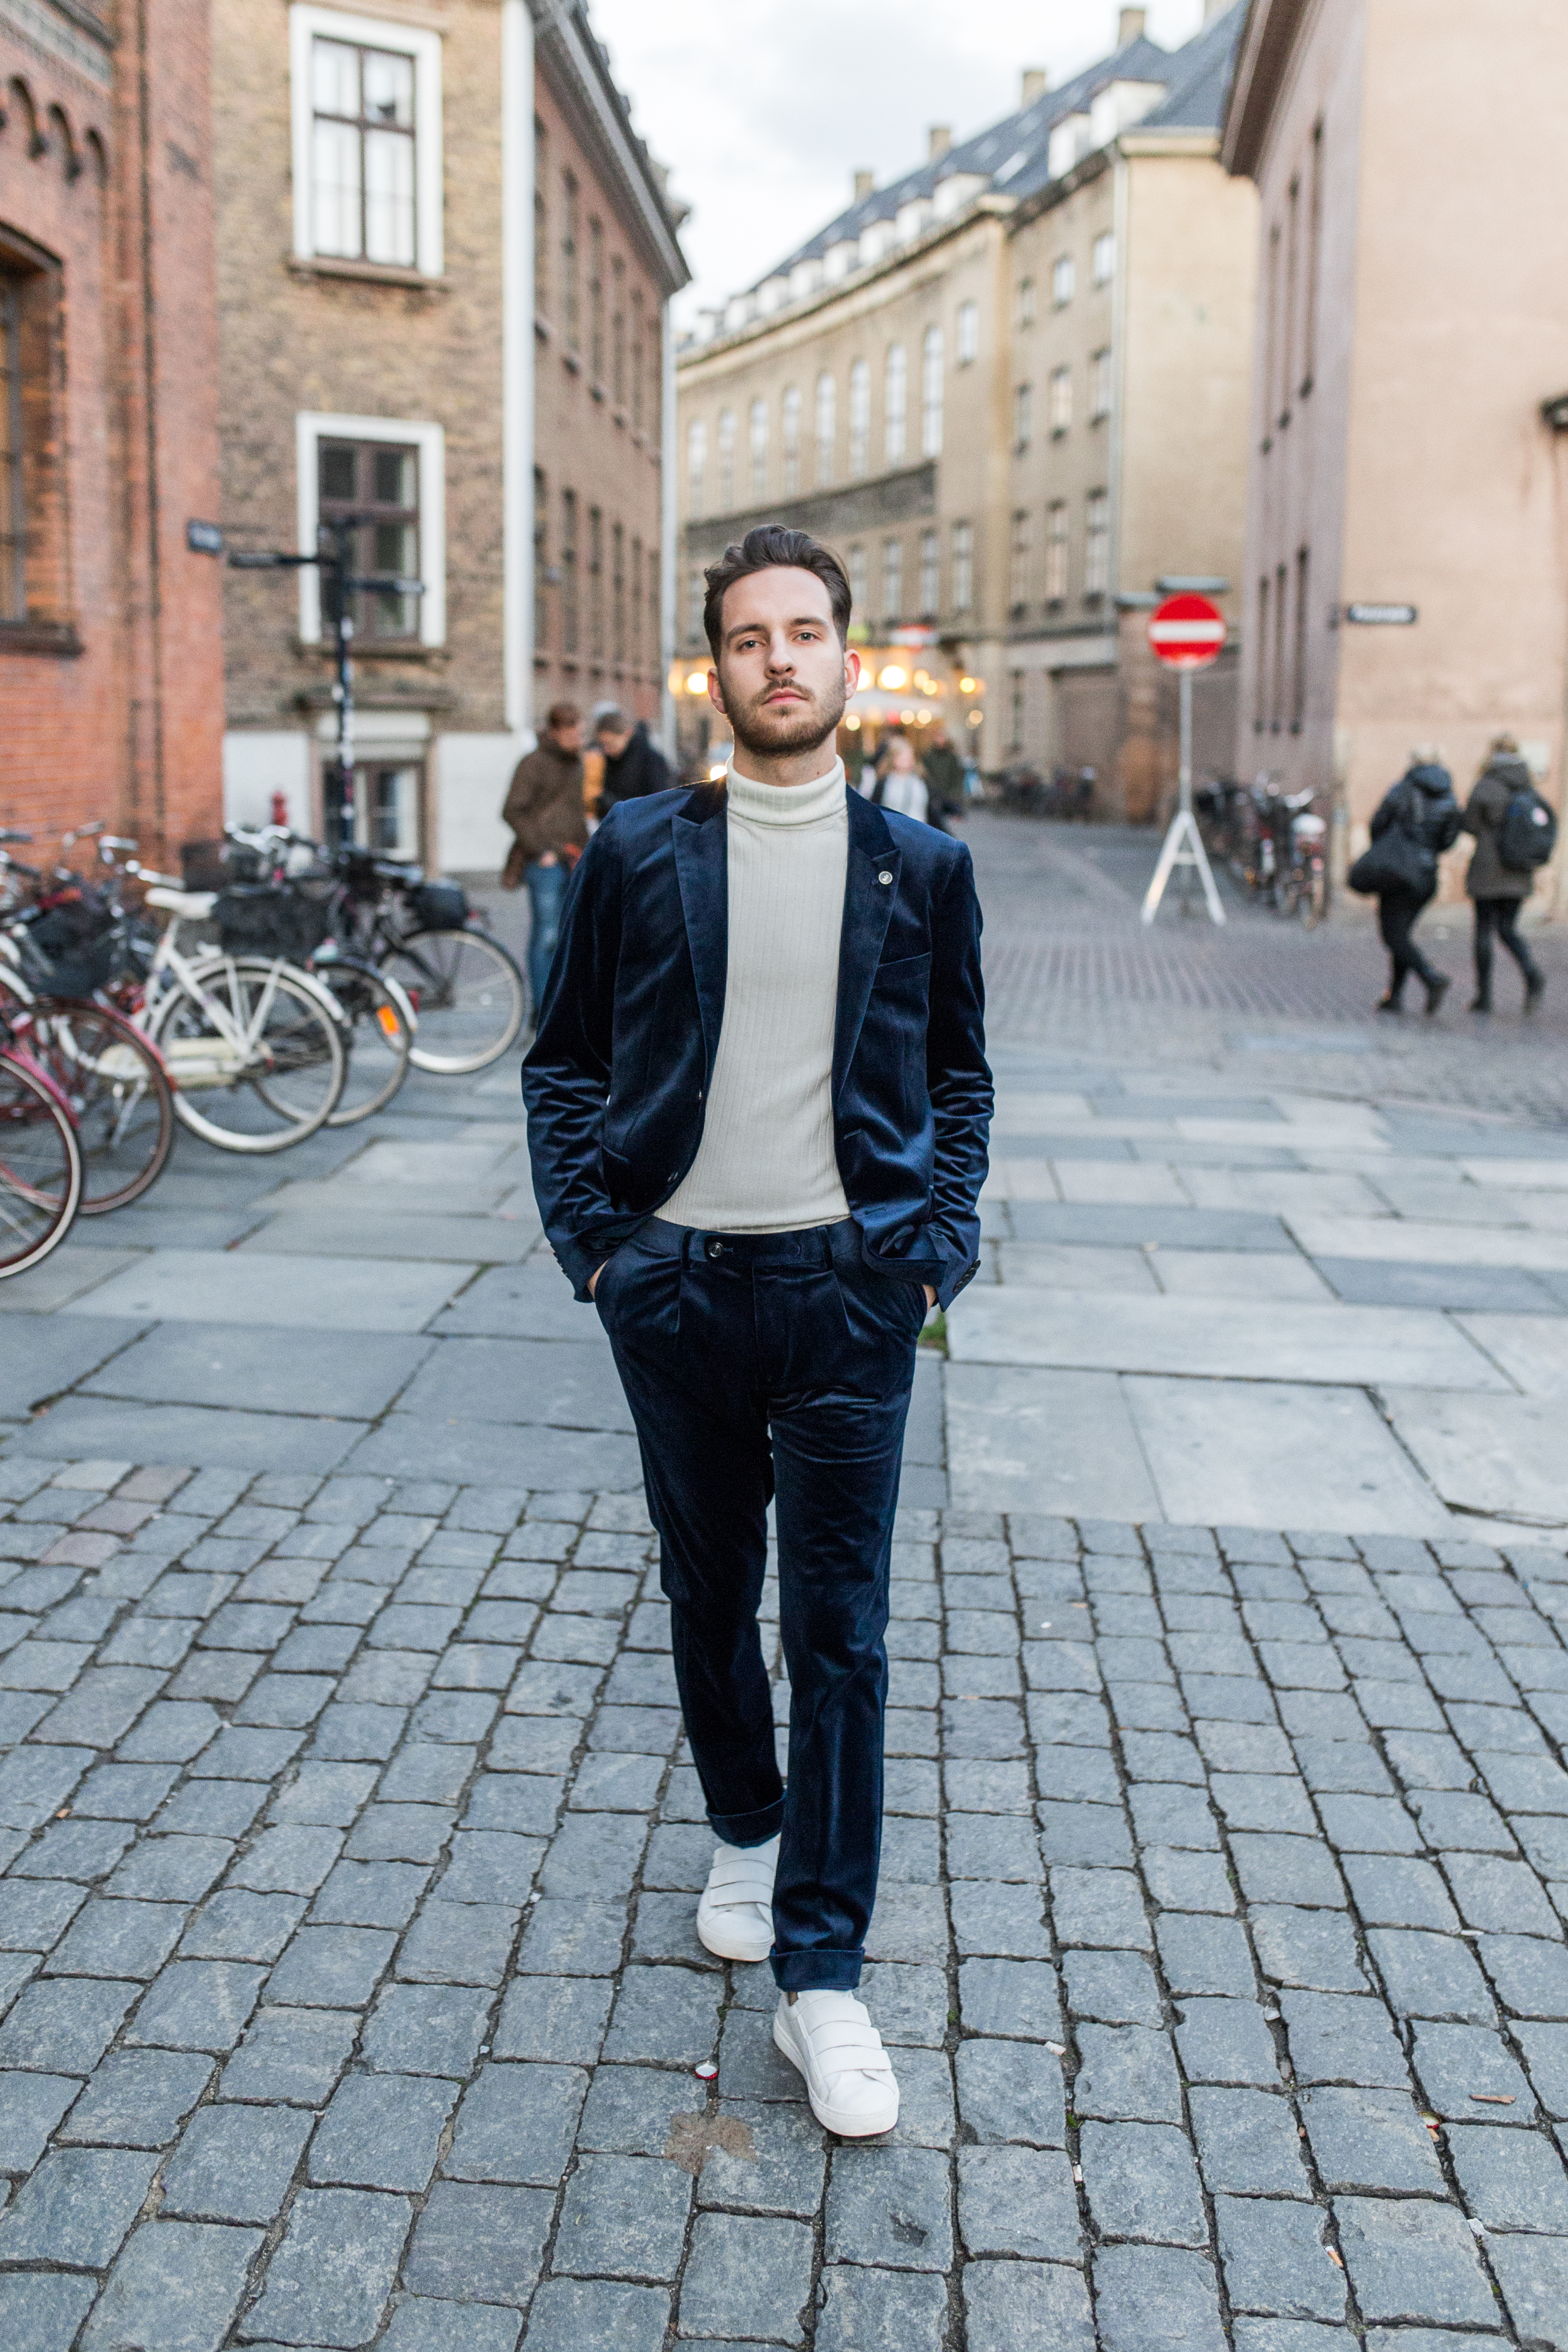 zalando_style_icon_male_outfit-2-of-6